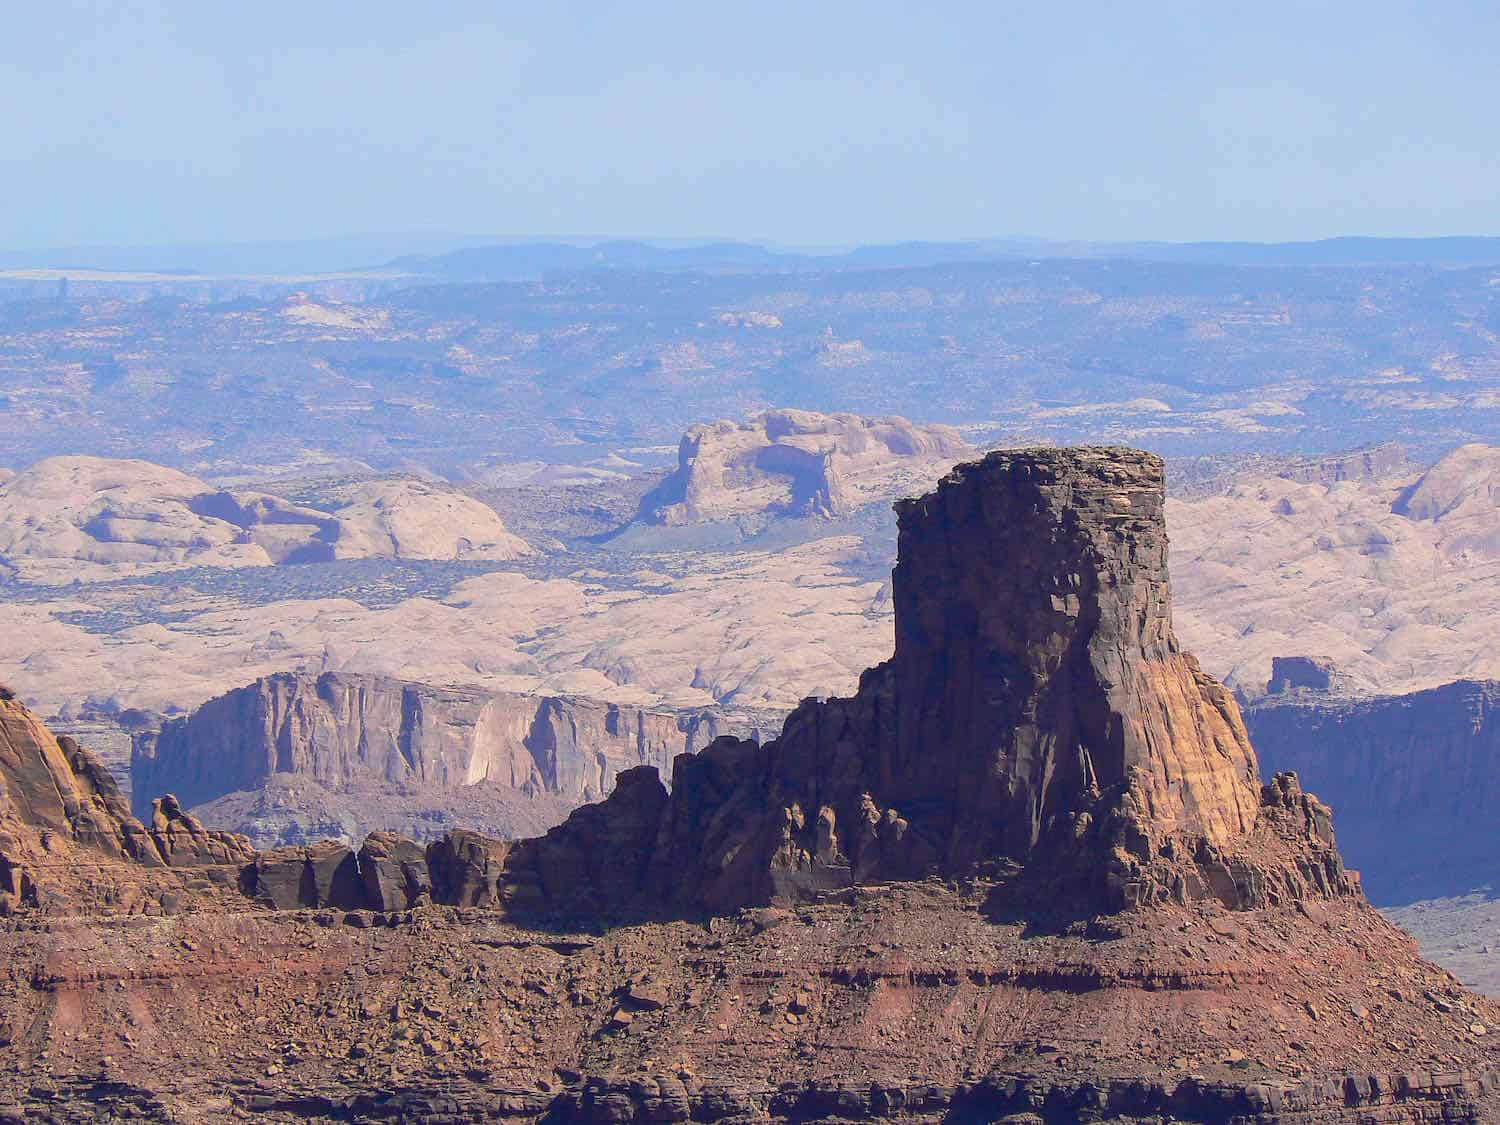 Red butte surrounded by high desert landscape